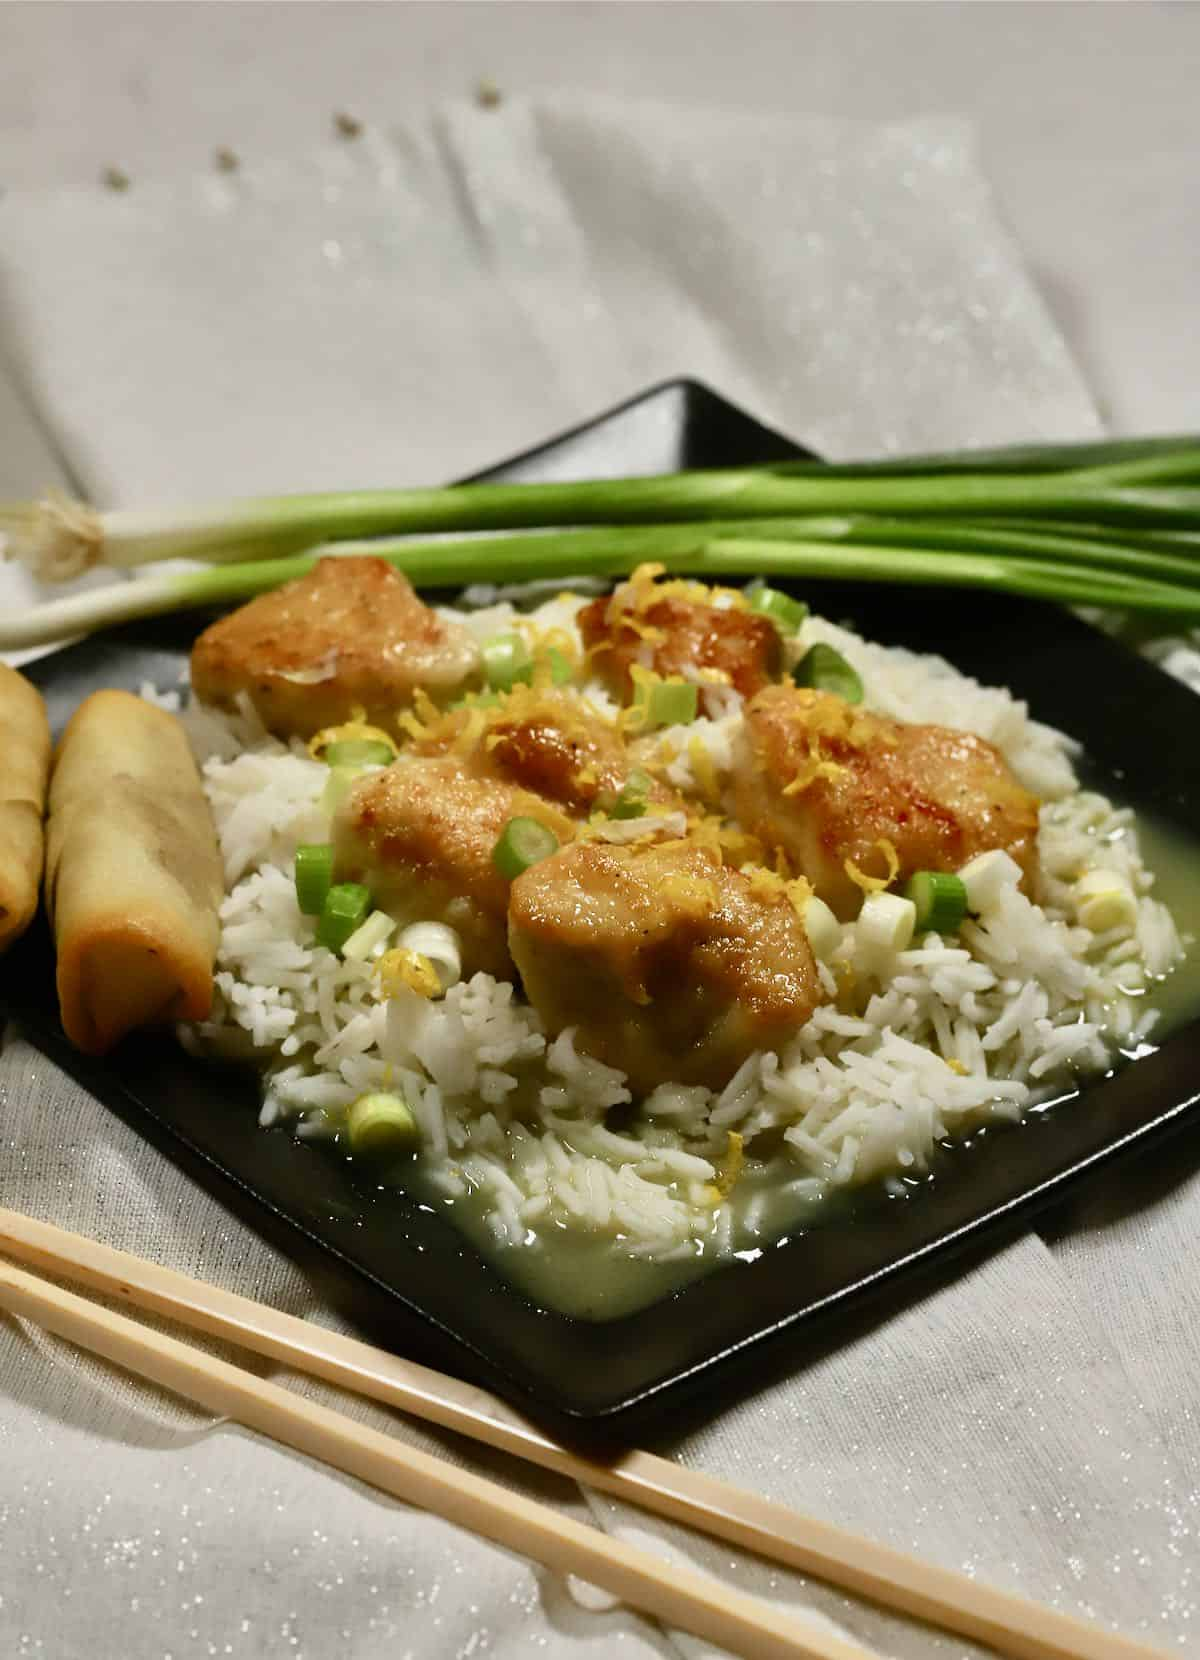 A black plate with rice topped with cooked pieces of chicken.